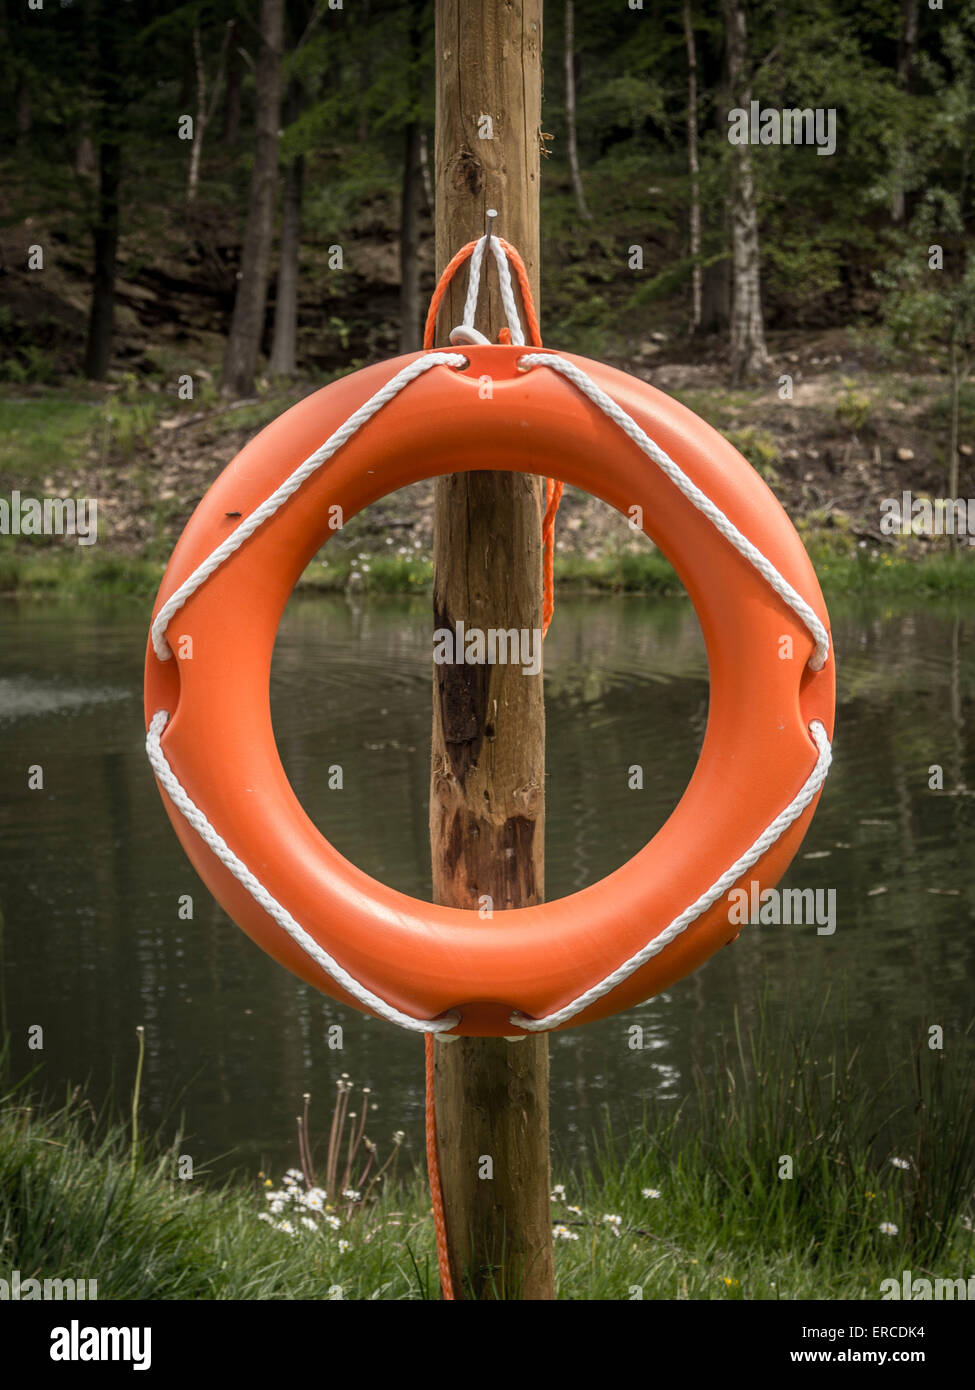 Lifebelt at edge of water - Stock Image